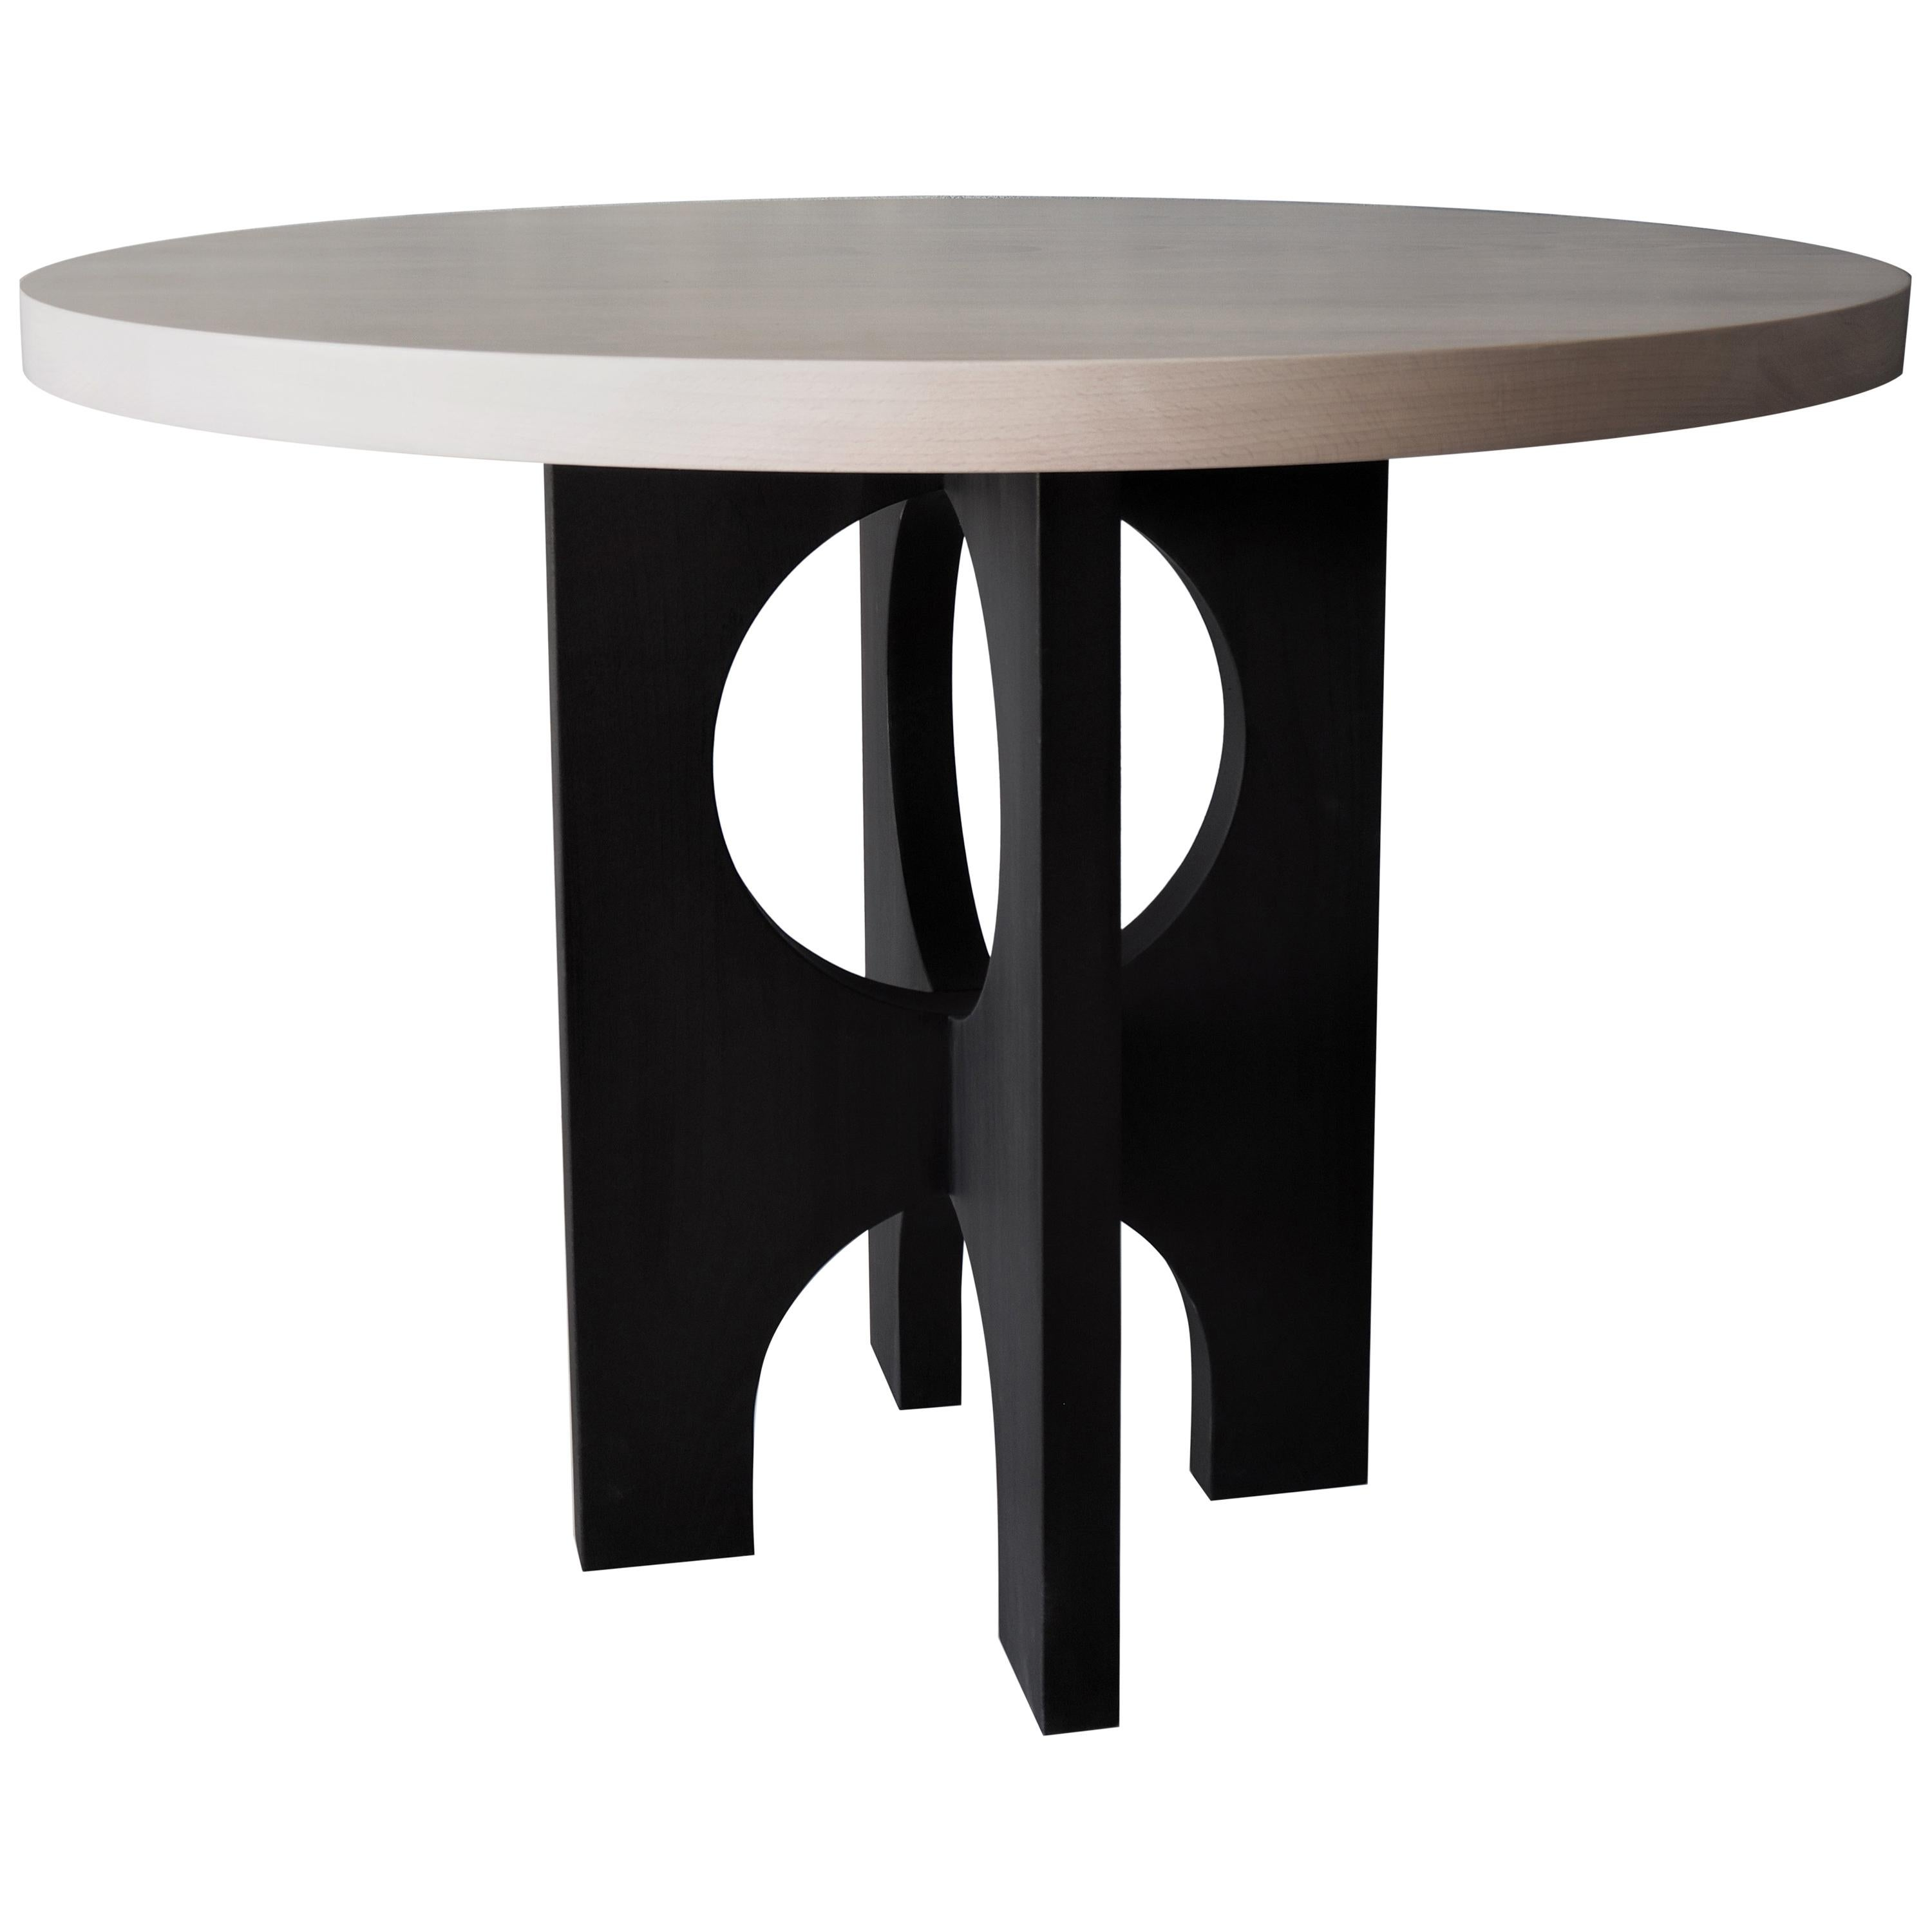 Archway Dining Table, India Ink Black and White Washed by MSJ Furniture Studio